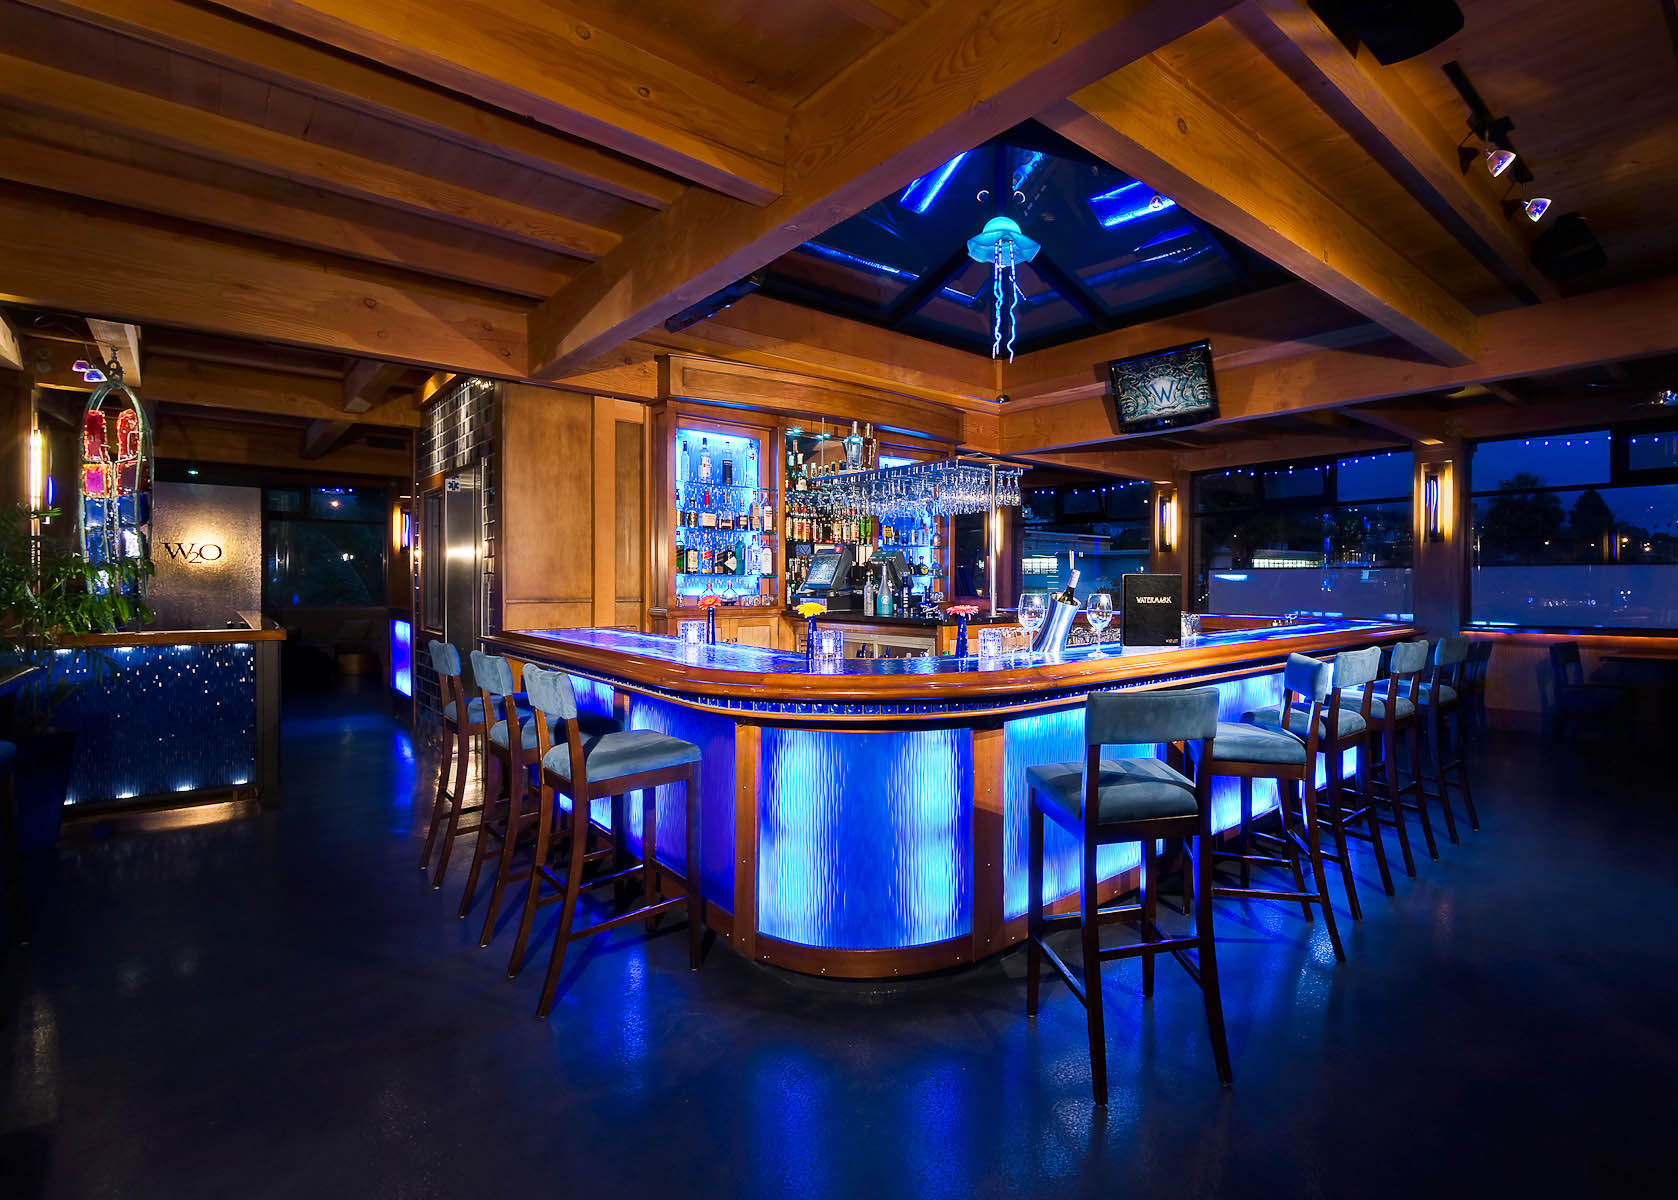 Main Street Architects' Watermark W2O bar in Ventura, CA featuring custom neon lighting and natural wood